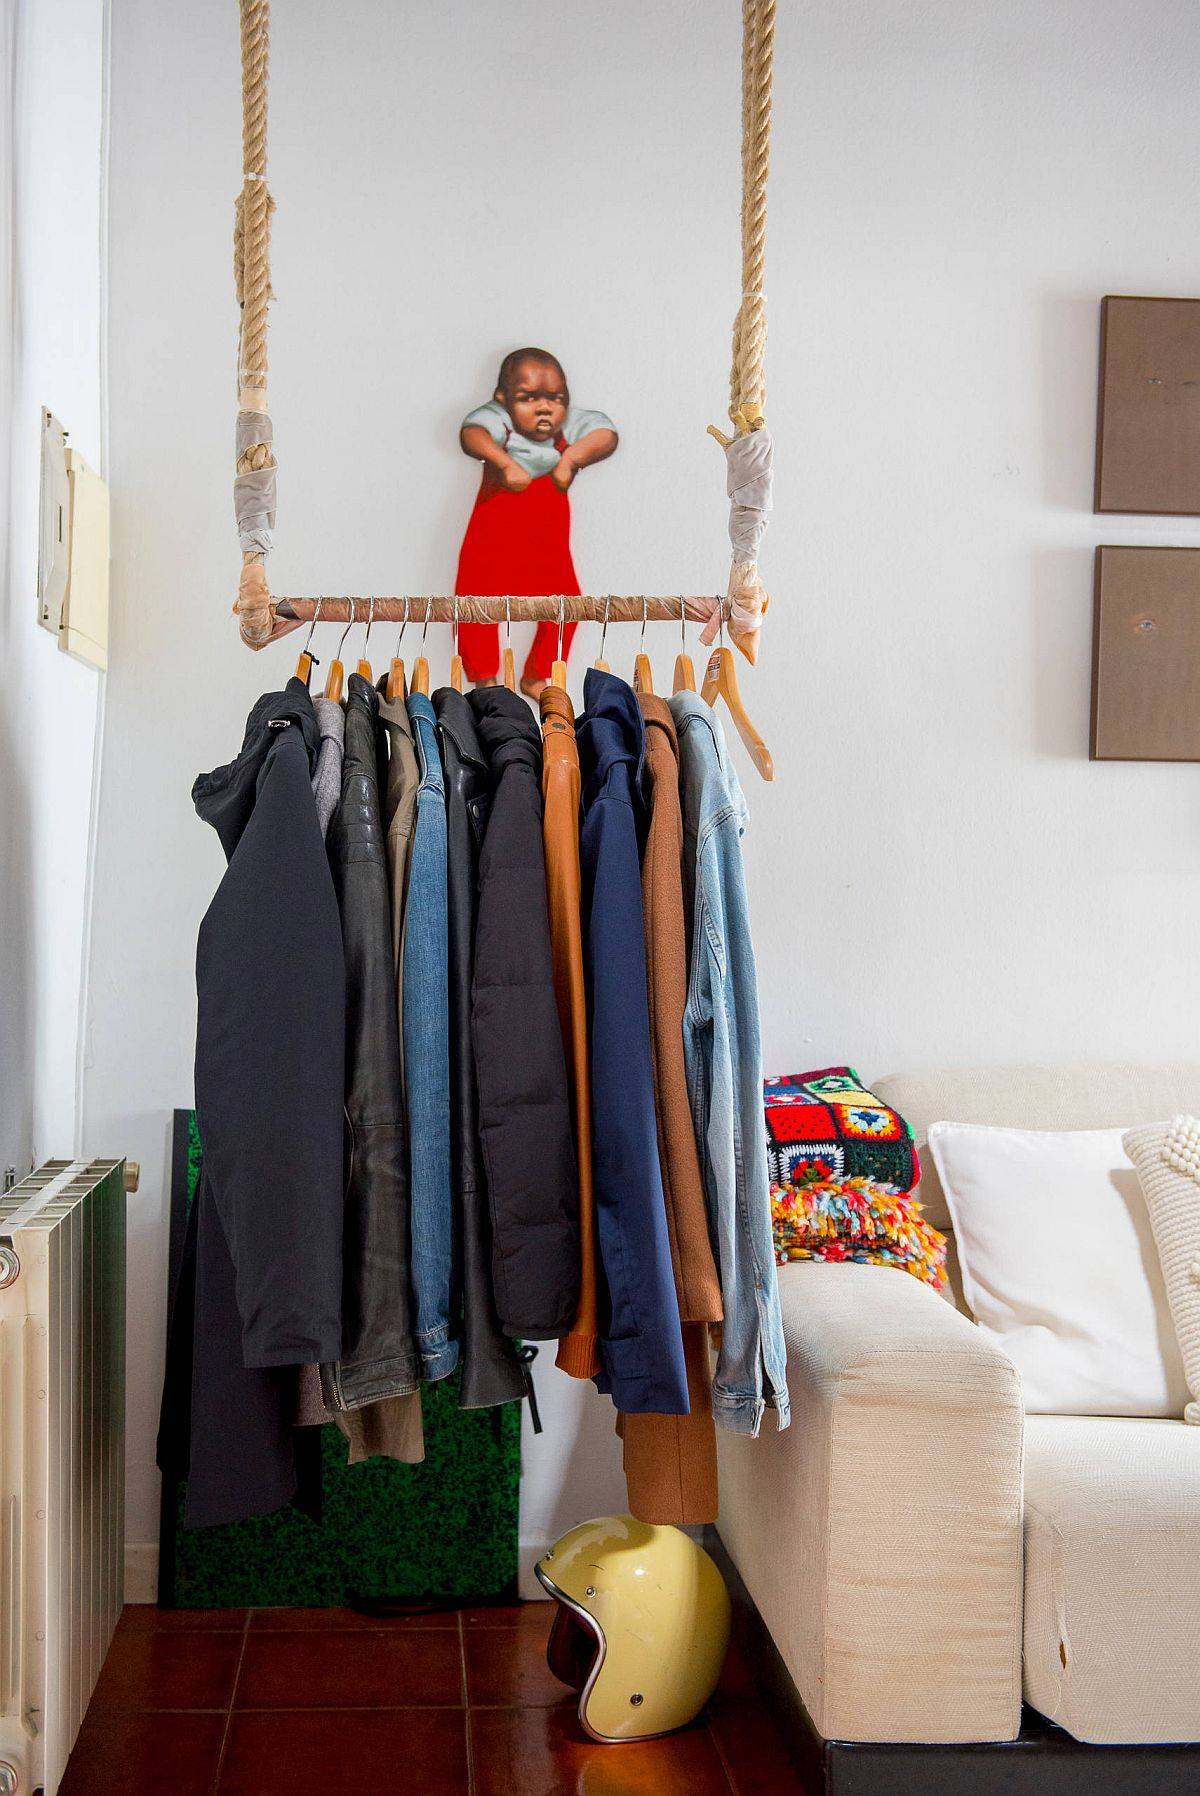 Not everyone needs a full-fledged closet with shelves and baskets!